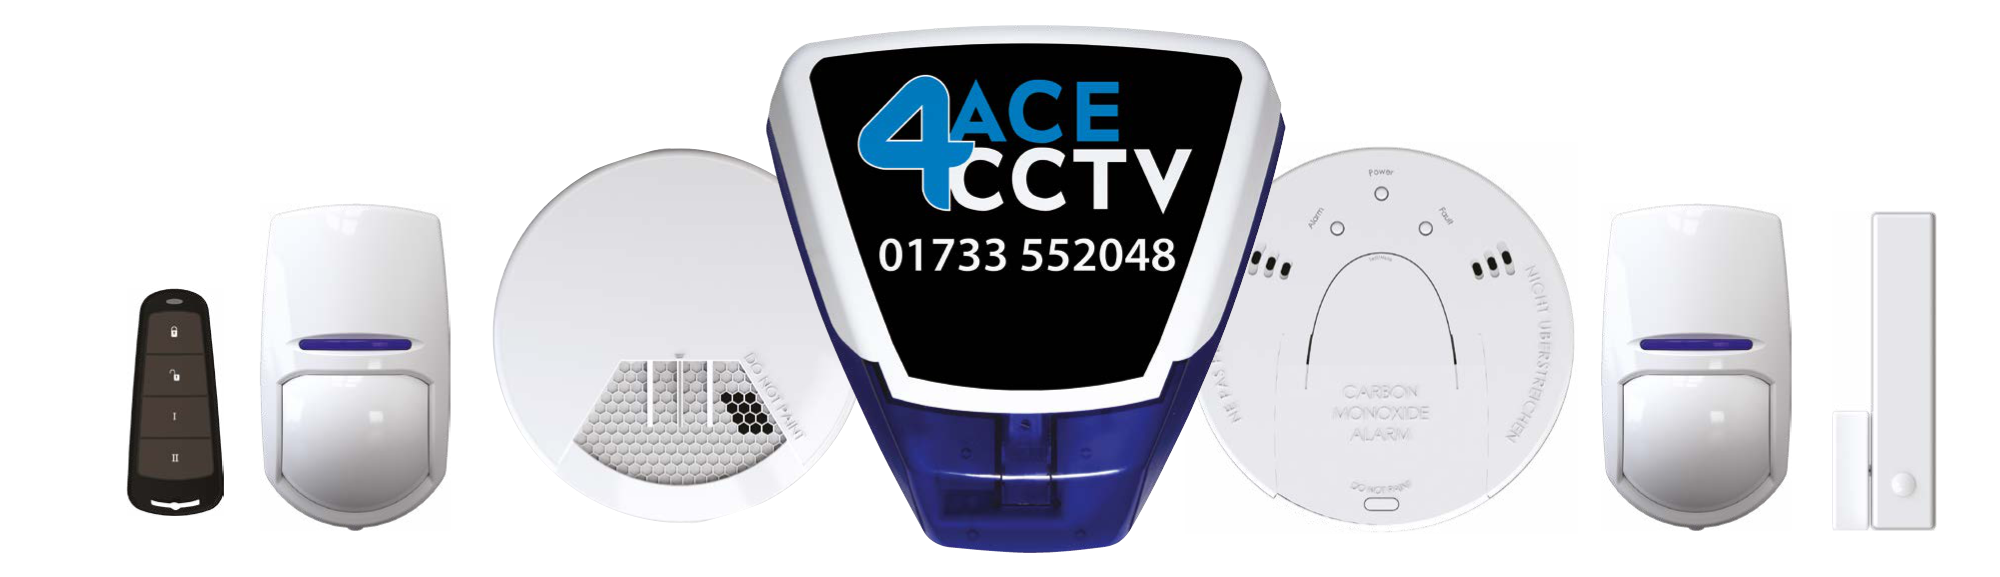 Ace4cctv products